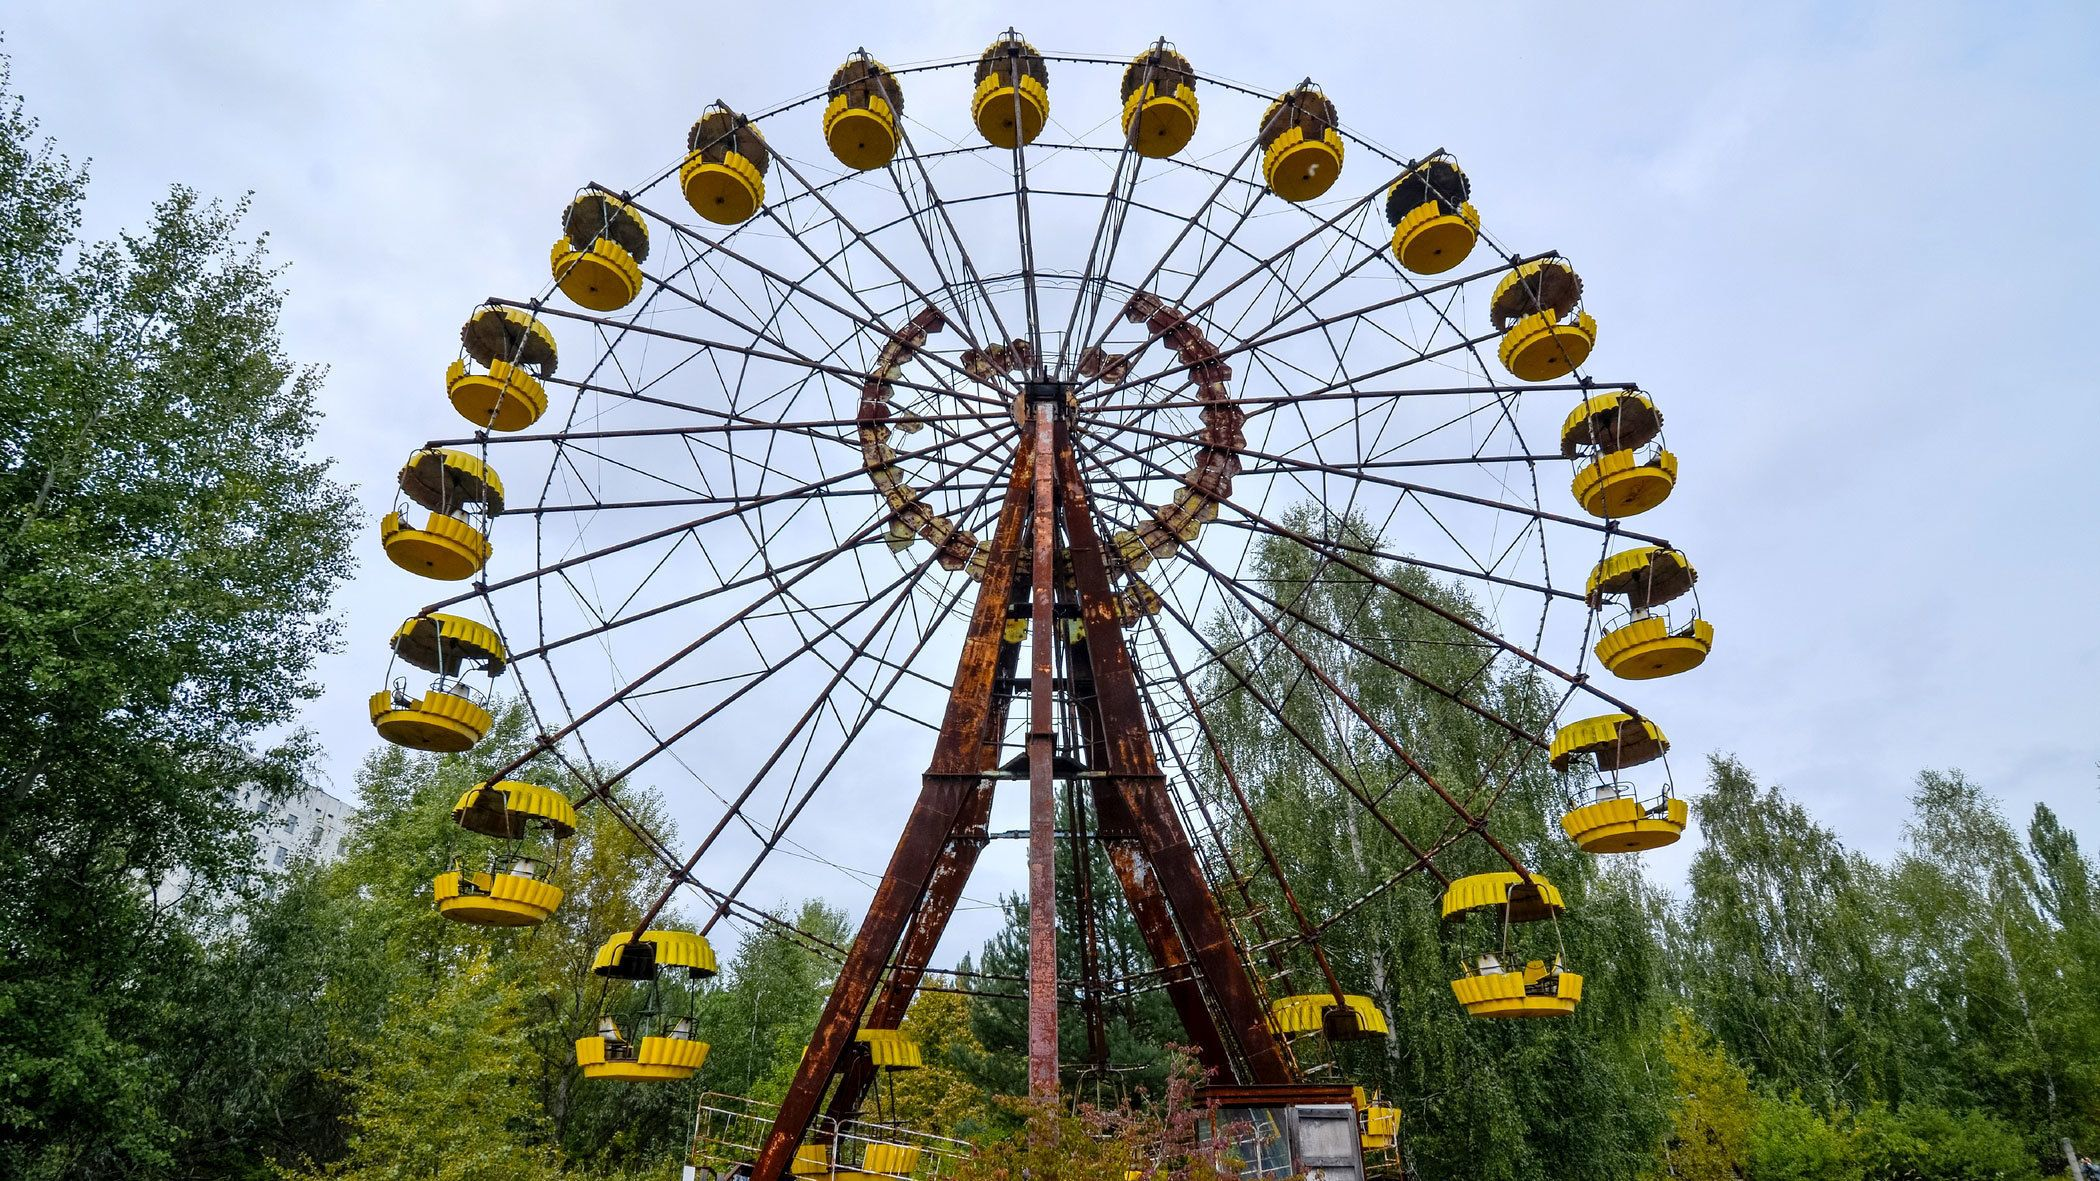 Ferris wheel at an abandoned amusement park in Pripyat